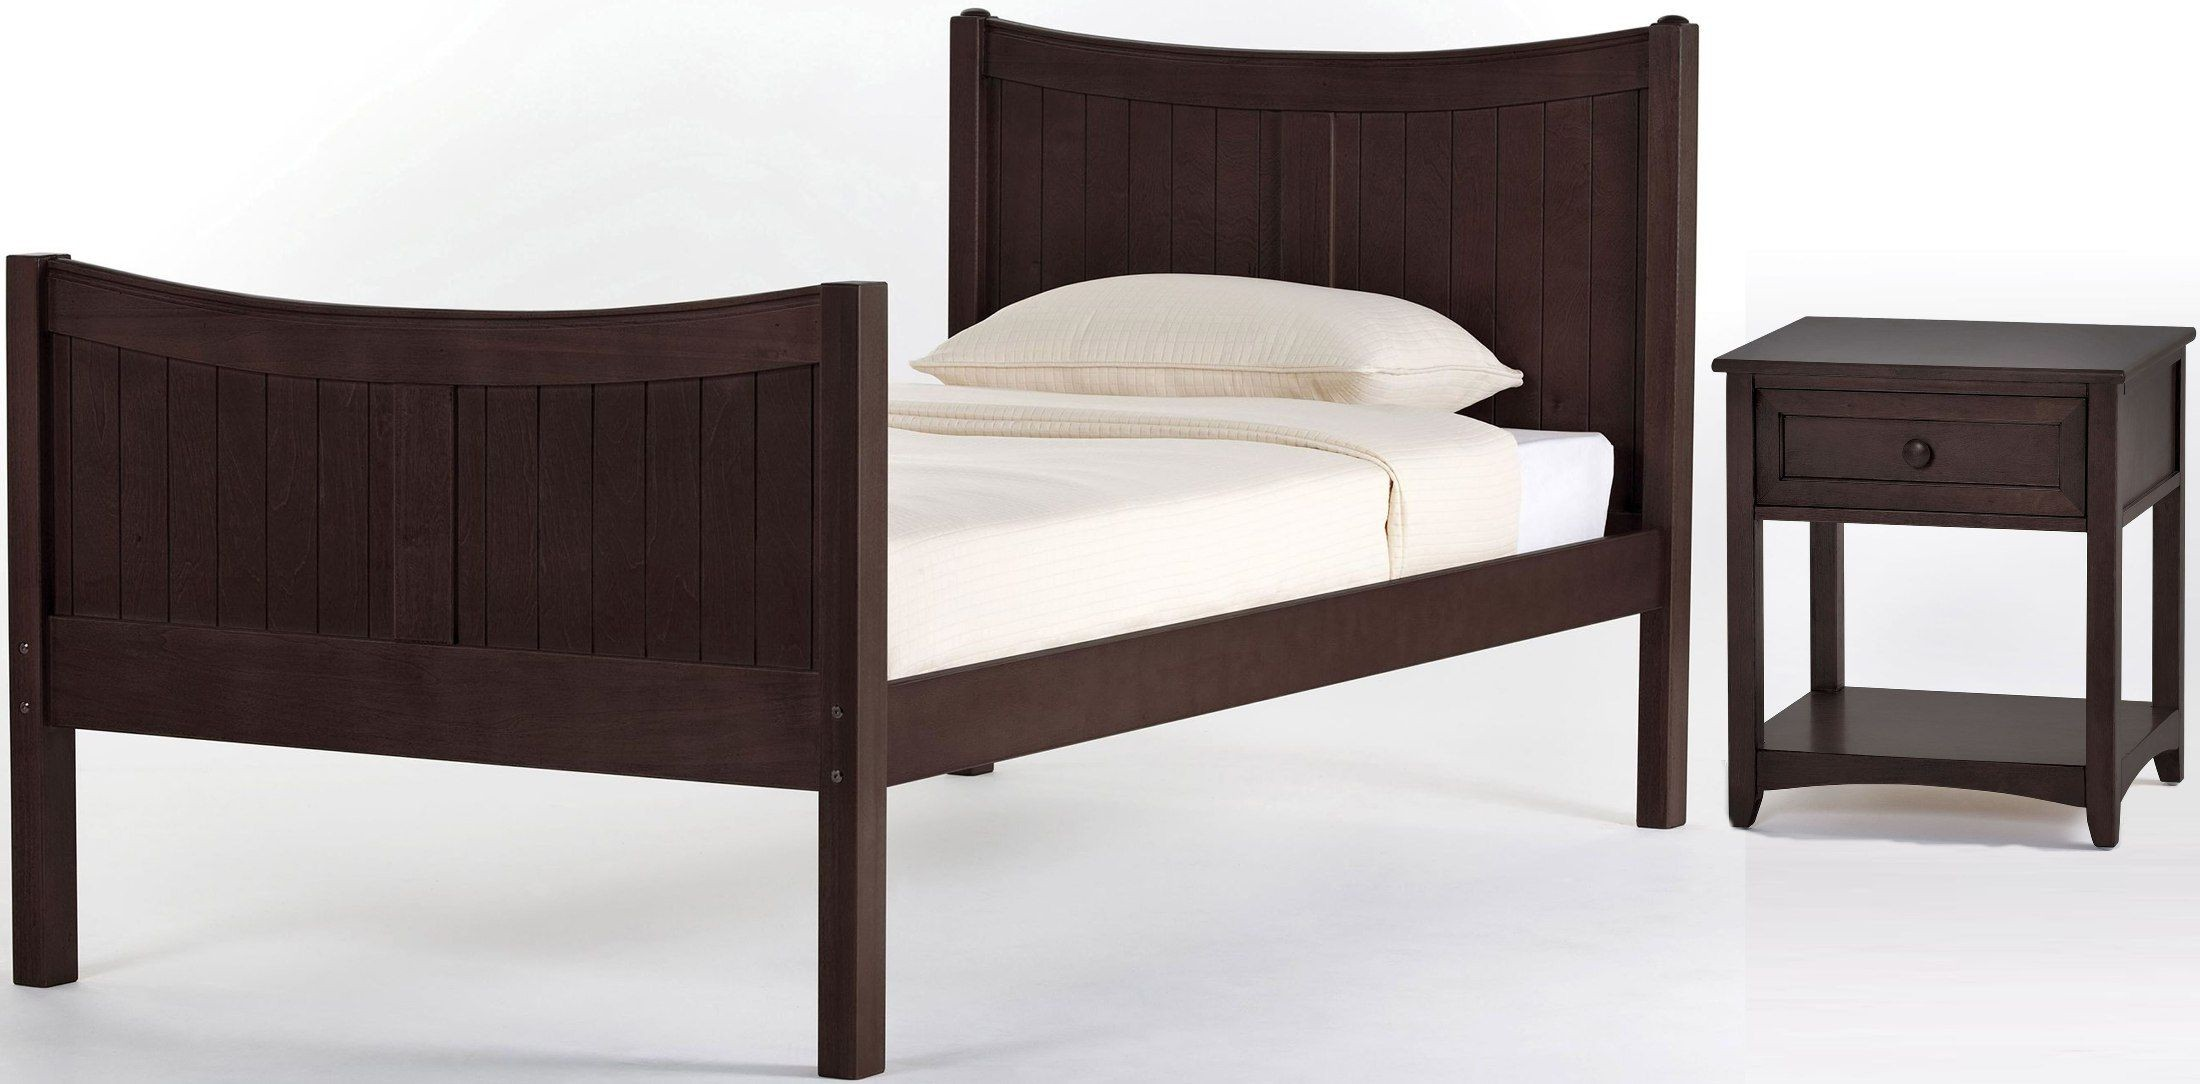 School house chocolate taylor youth panel bedroom set from for Taylor j bedroom furniture